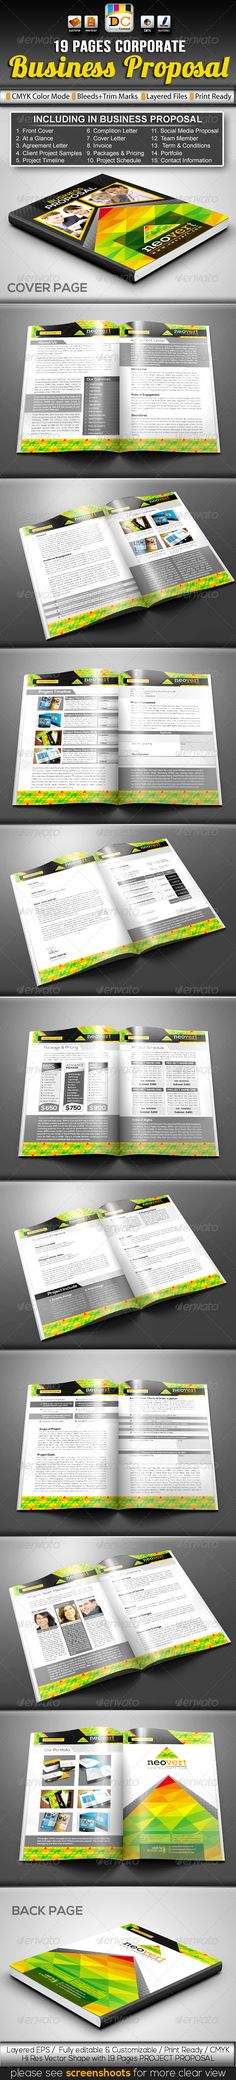 Invoice Template - business proposal cover sheet